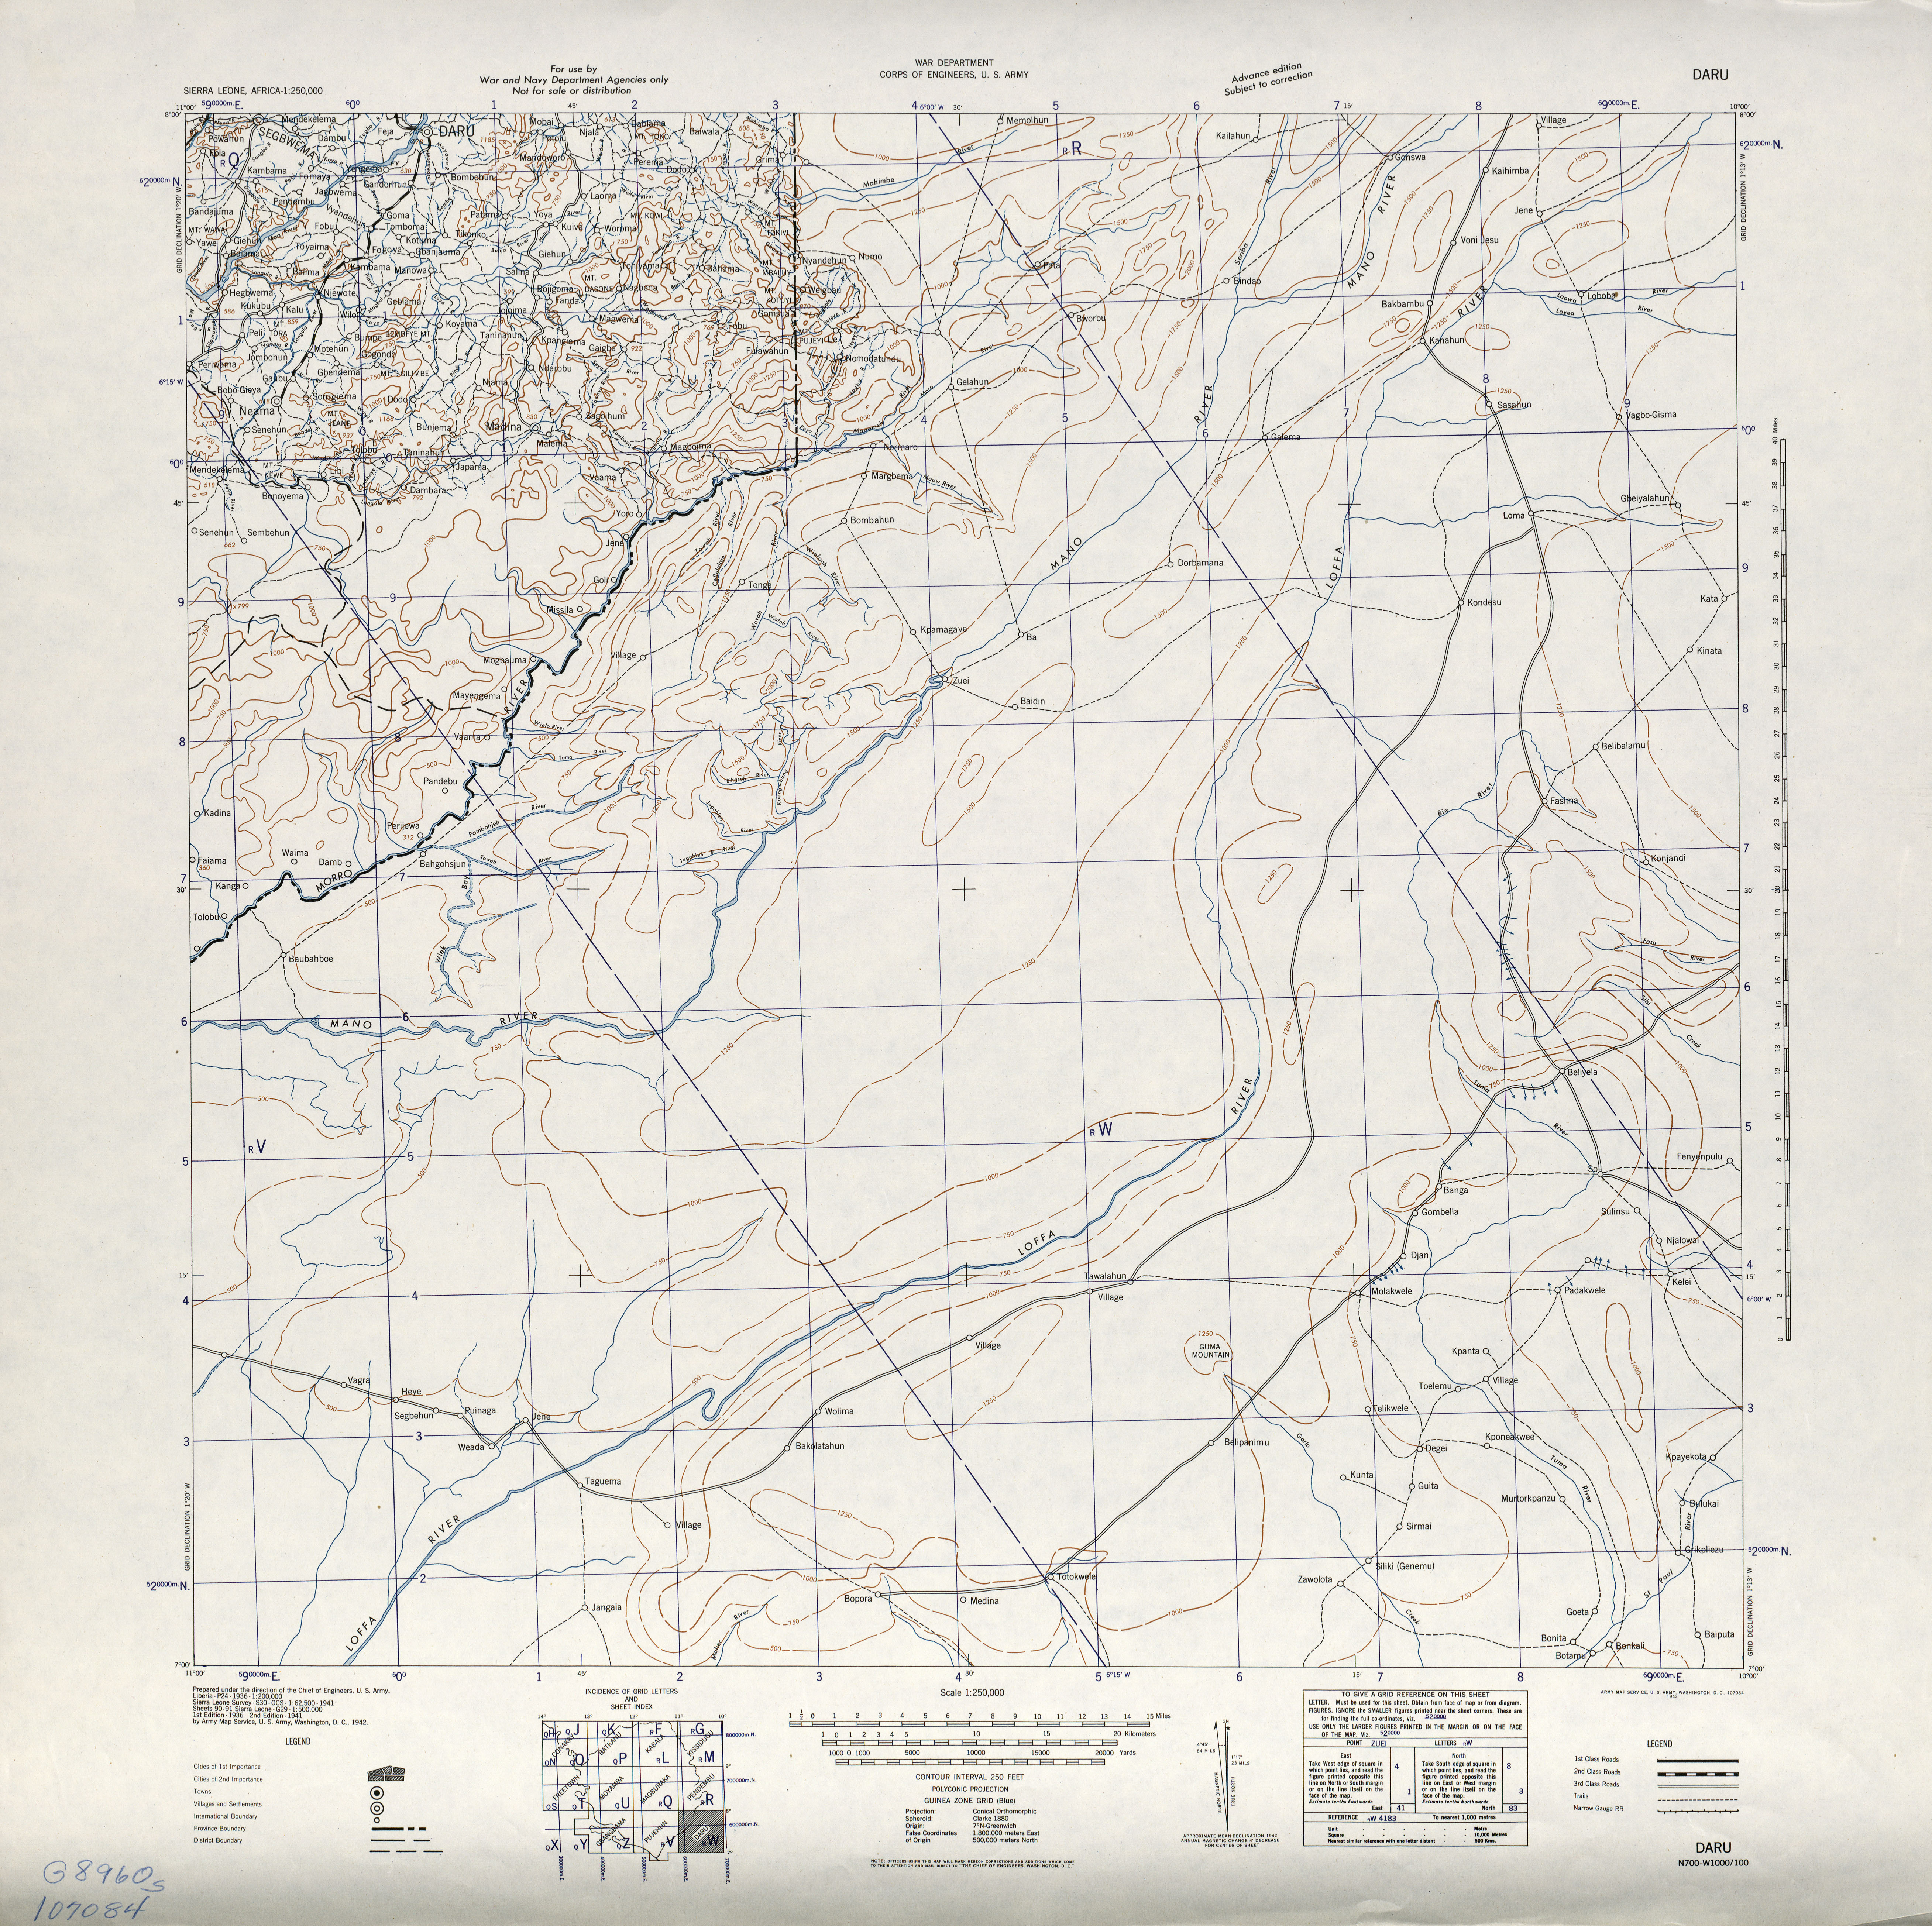 Sierra Leone AMS Topographic Maps - Perry-Castañeda Map Collection ...